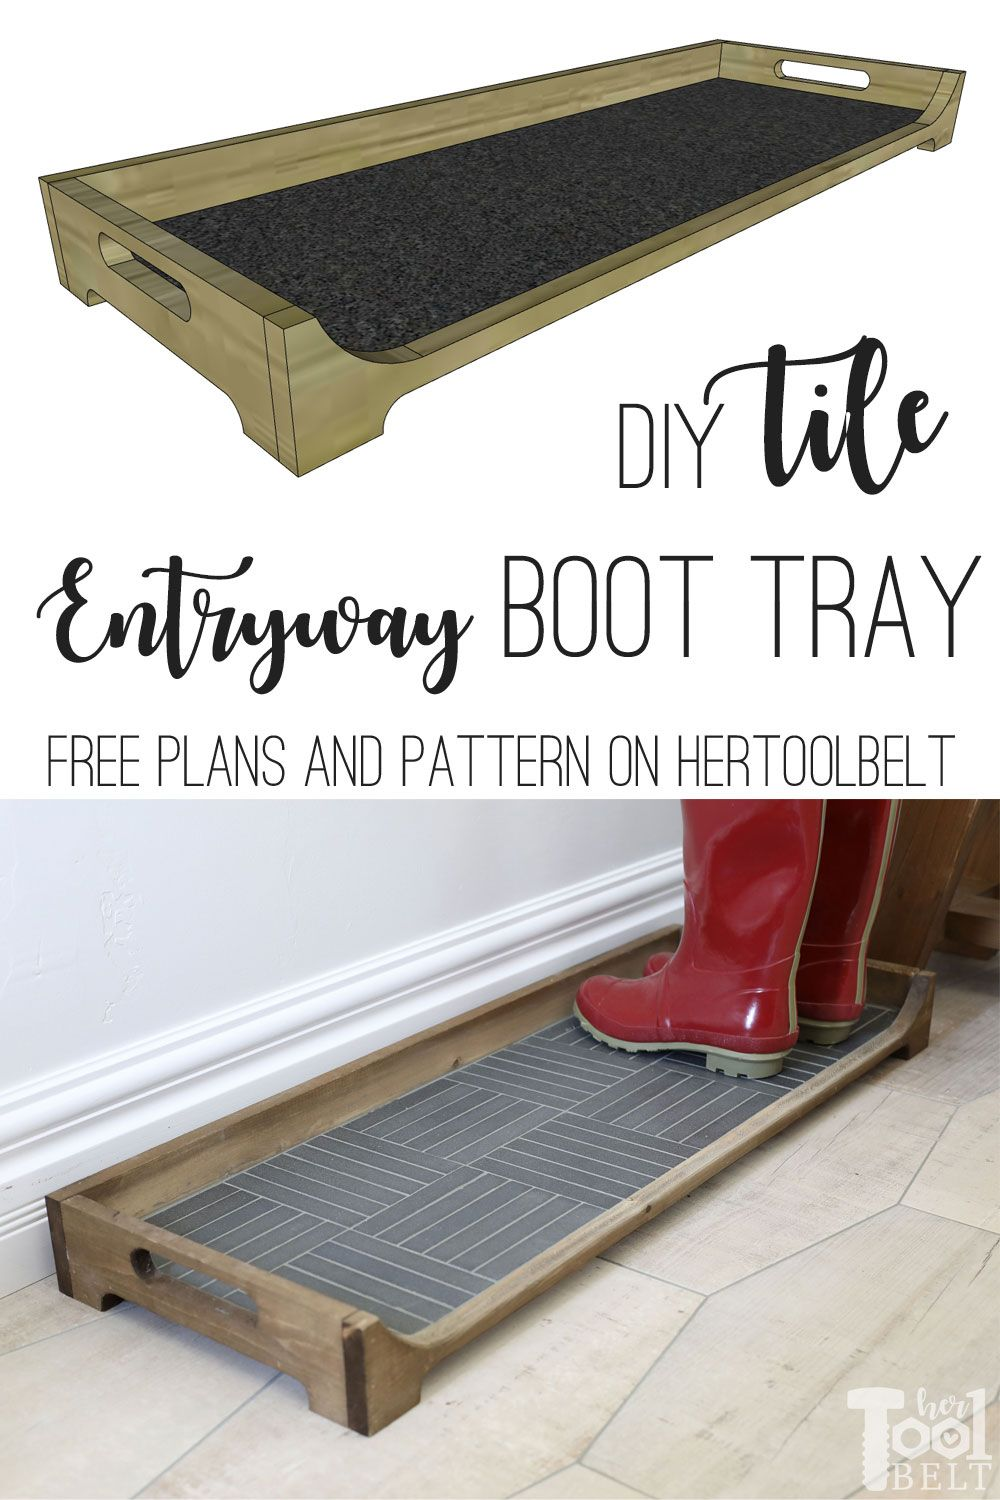 DIY Tile Boot Tray - Her Tool Belt